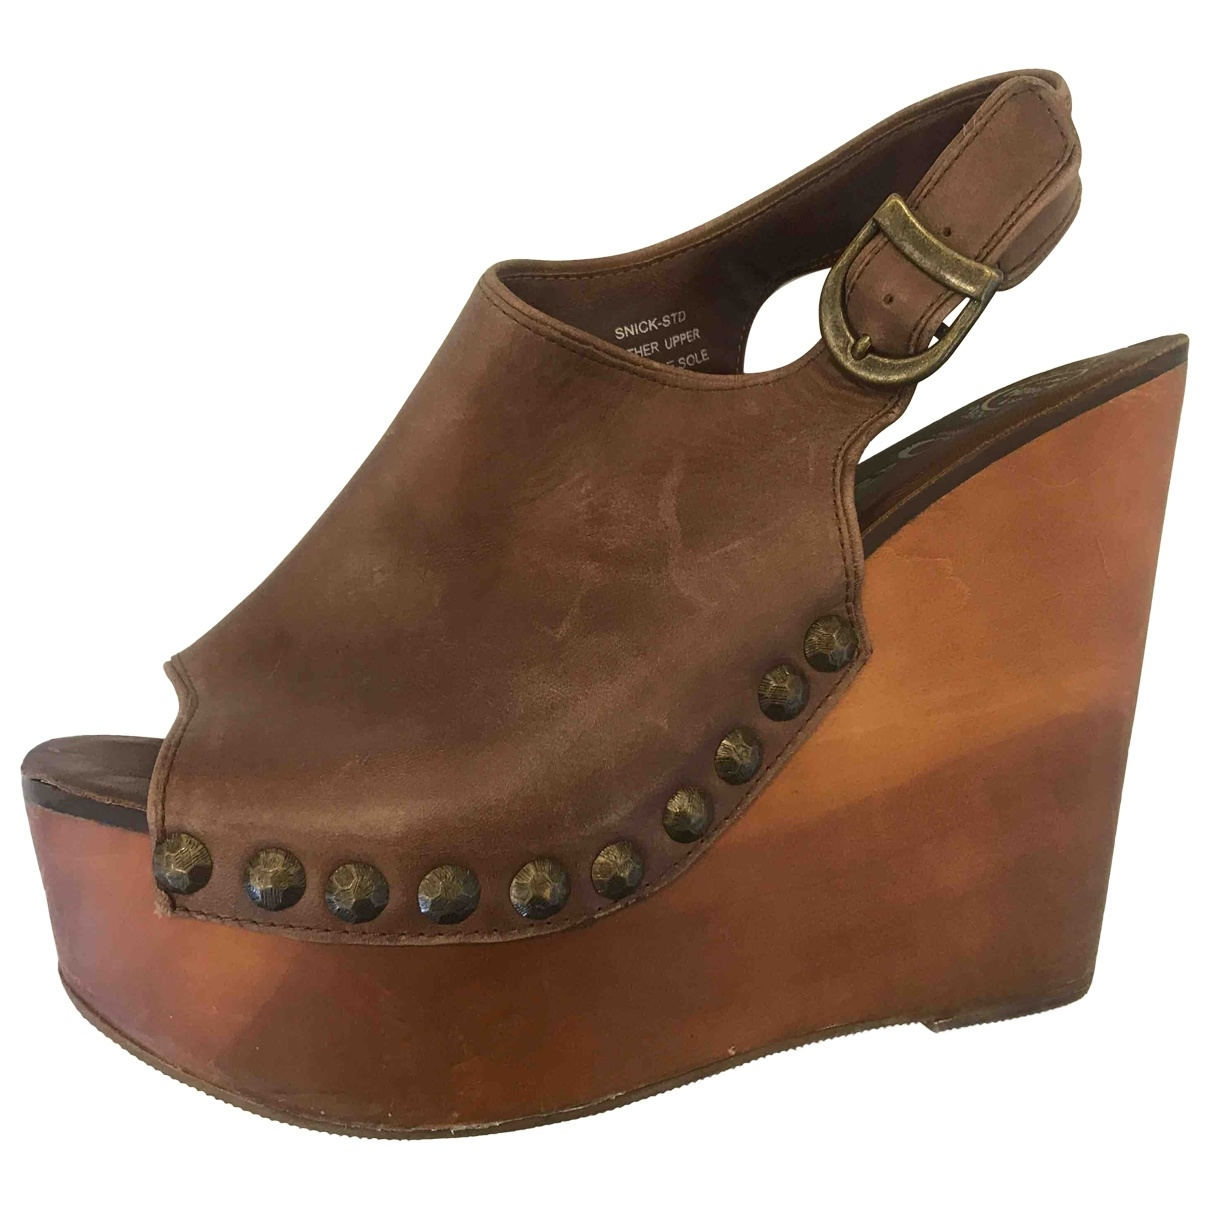 Jeffrey Campbell \N Brown Leather Mules & Clogs for Women 39 EU